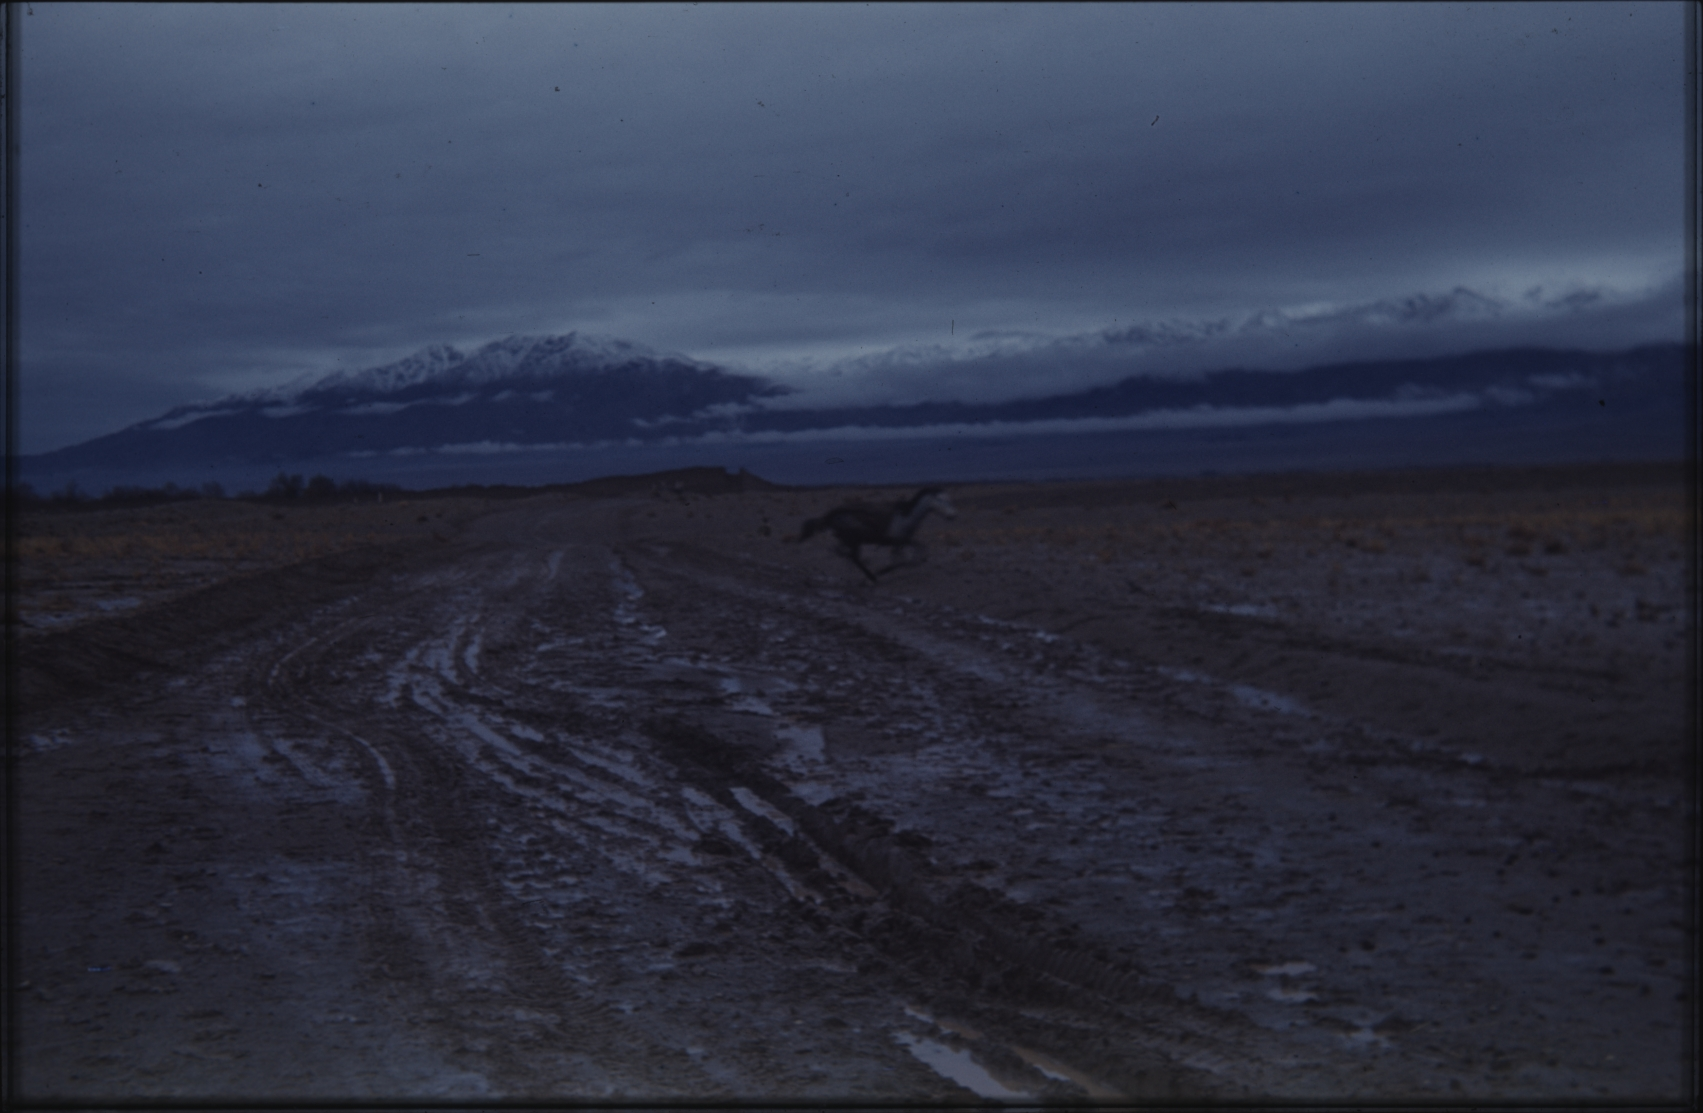 A road was often little more than a muddy track. Note the horse crossing. The Henning Haslund-Christensen Memorial Expedition, 1953-'55. Photo: the Moesgaard Museum archives